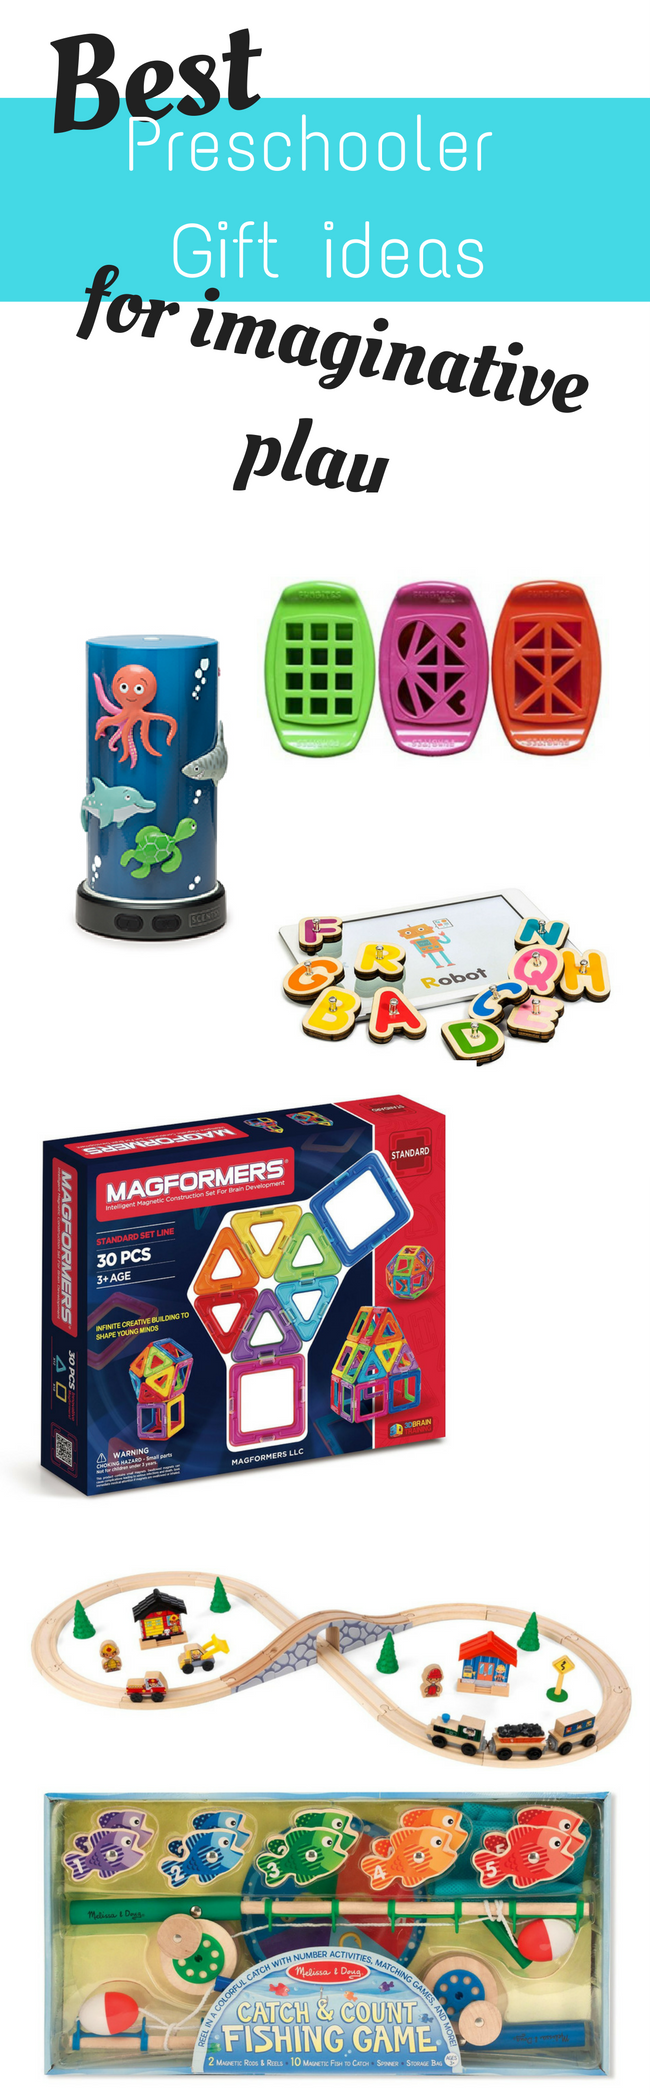 Fun gift ideas for preschoolers. These gift ideas are perfect for a preschool aged child. They encourage imagination and learning.